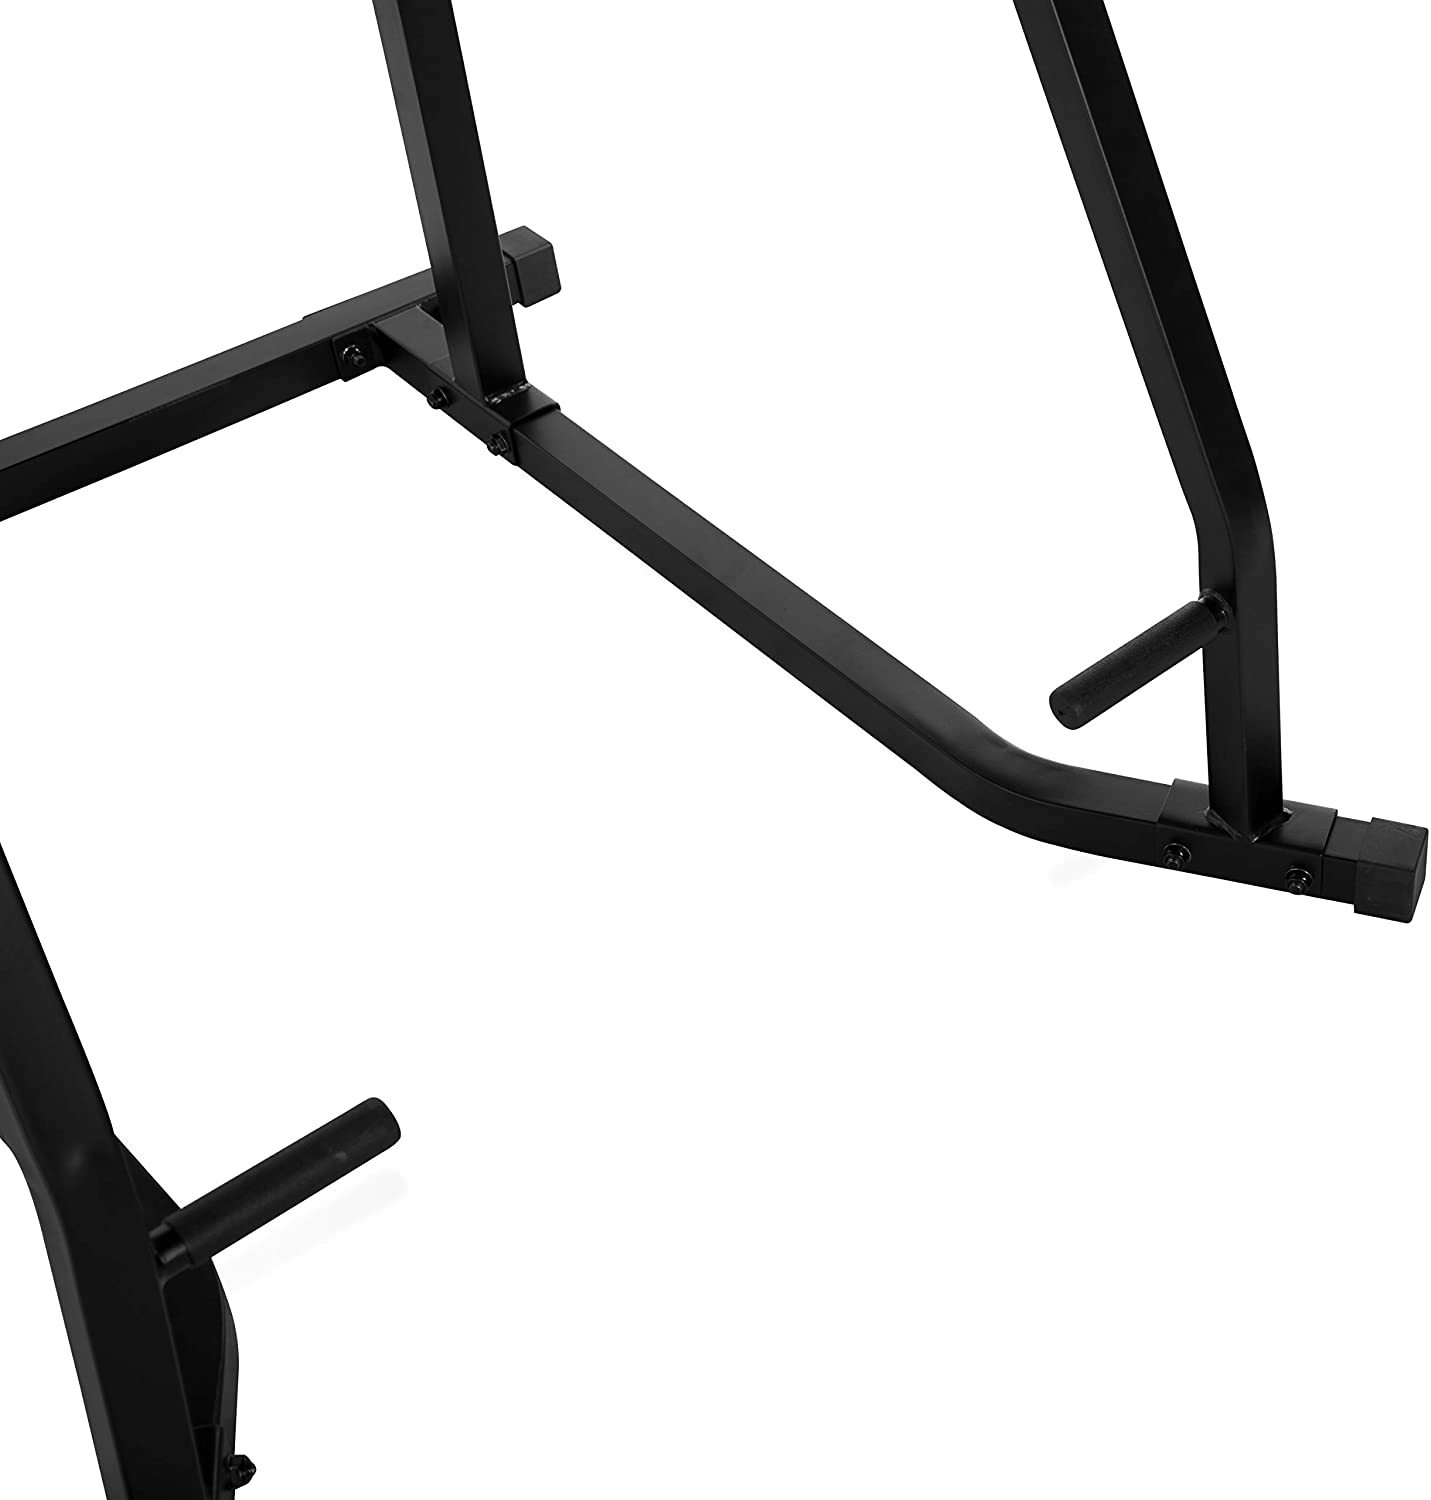 Black CAP VKR Bodyweight Training Station